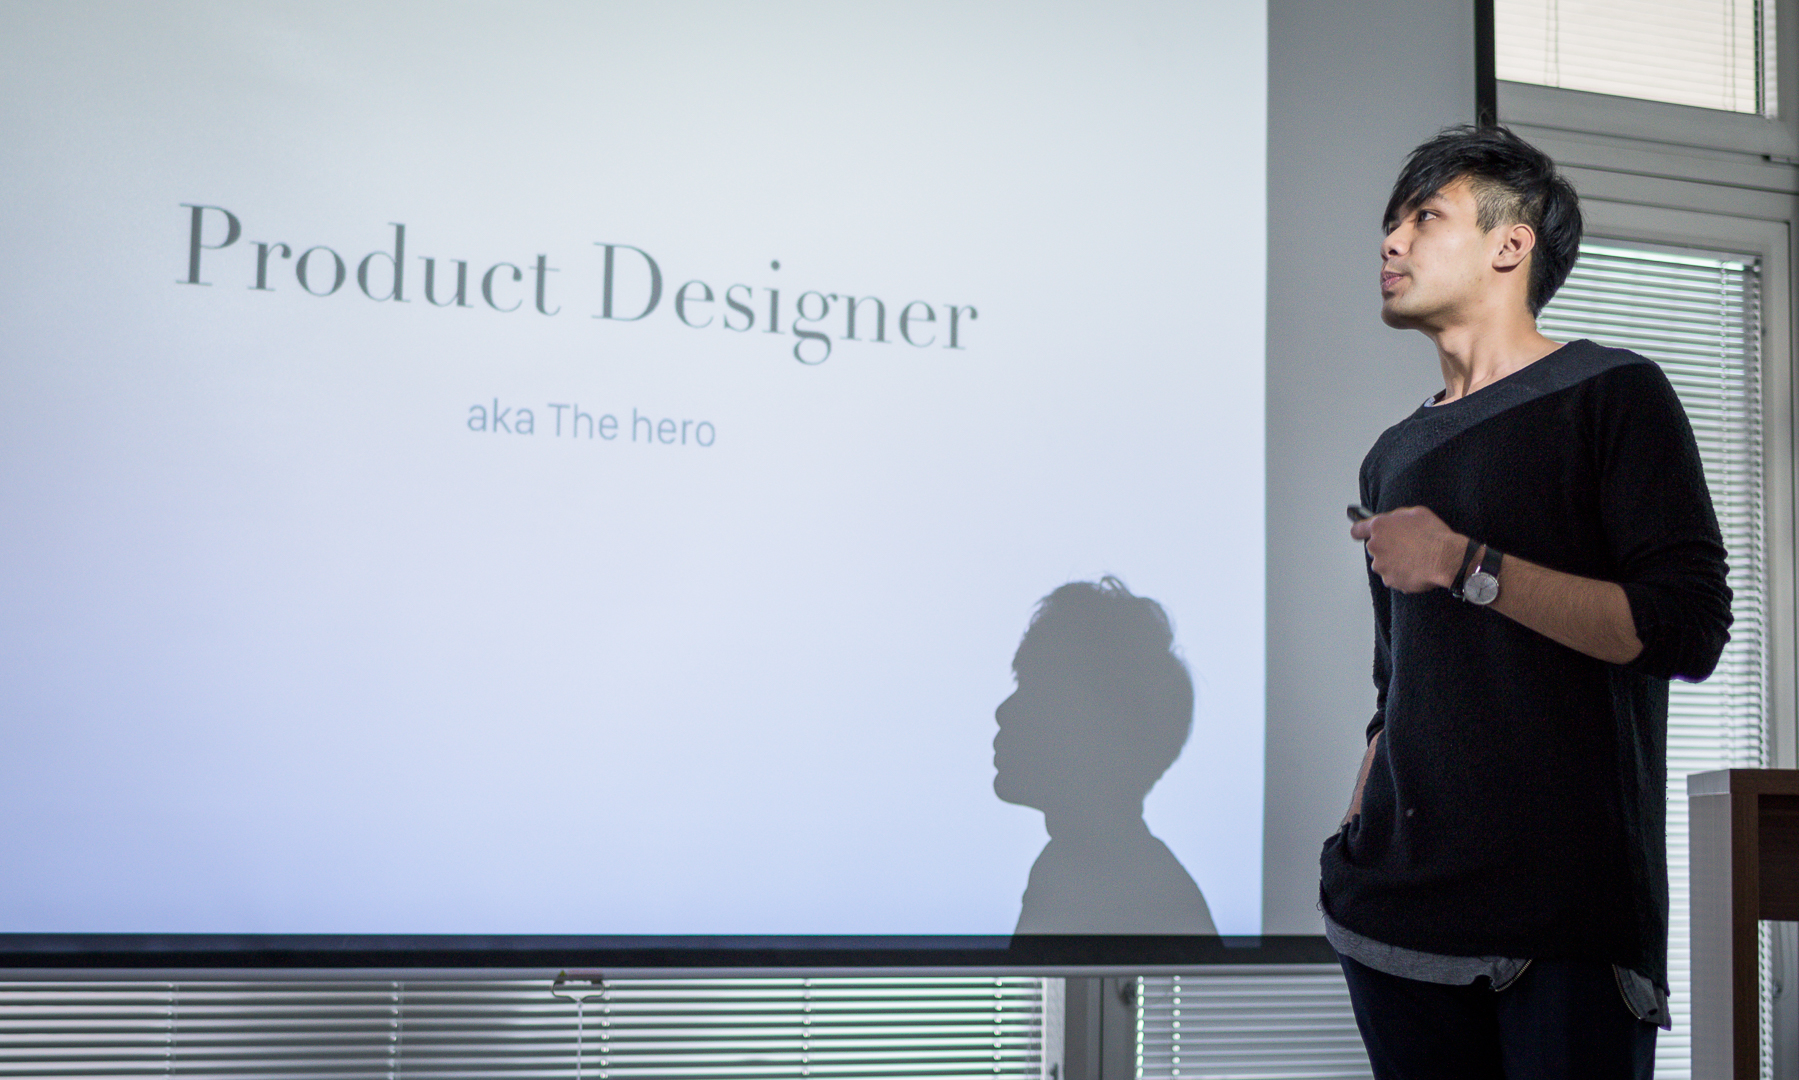 Jan Vu Nam presenting on product design